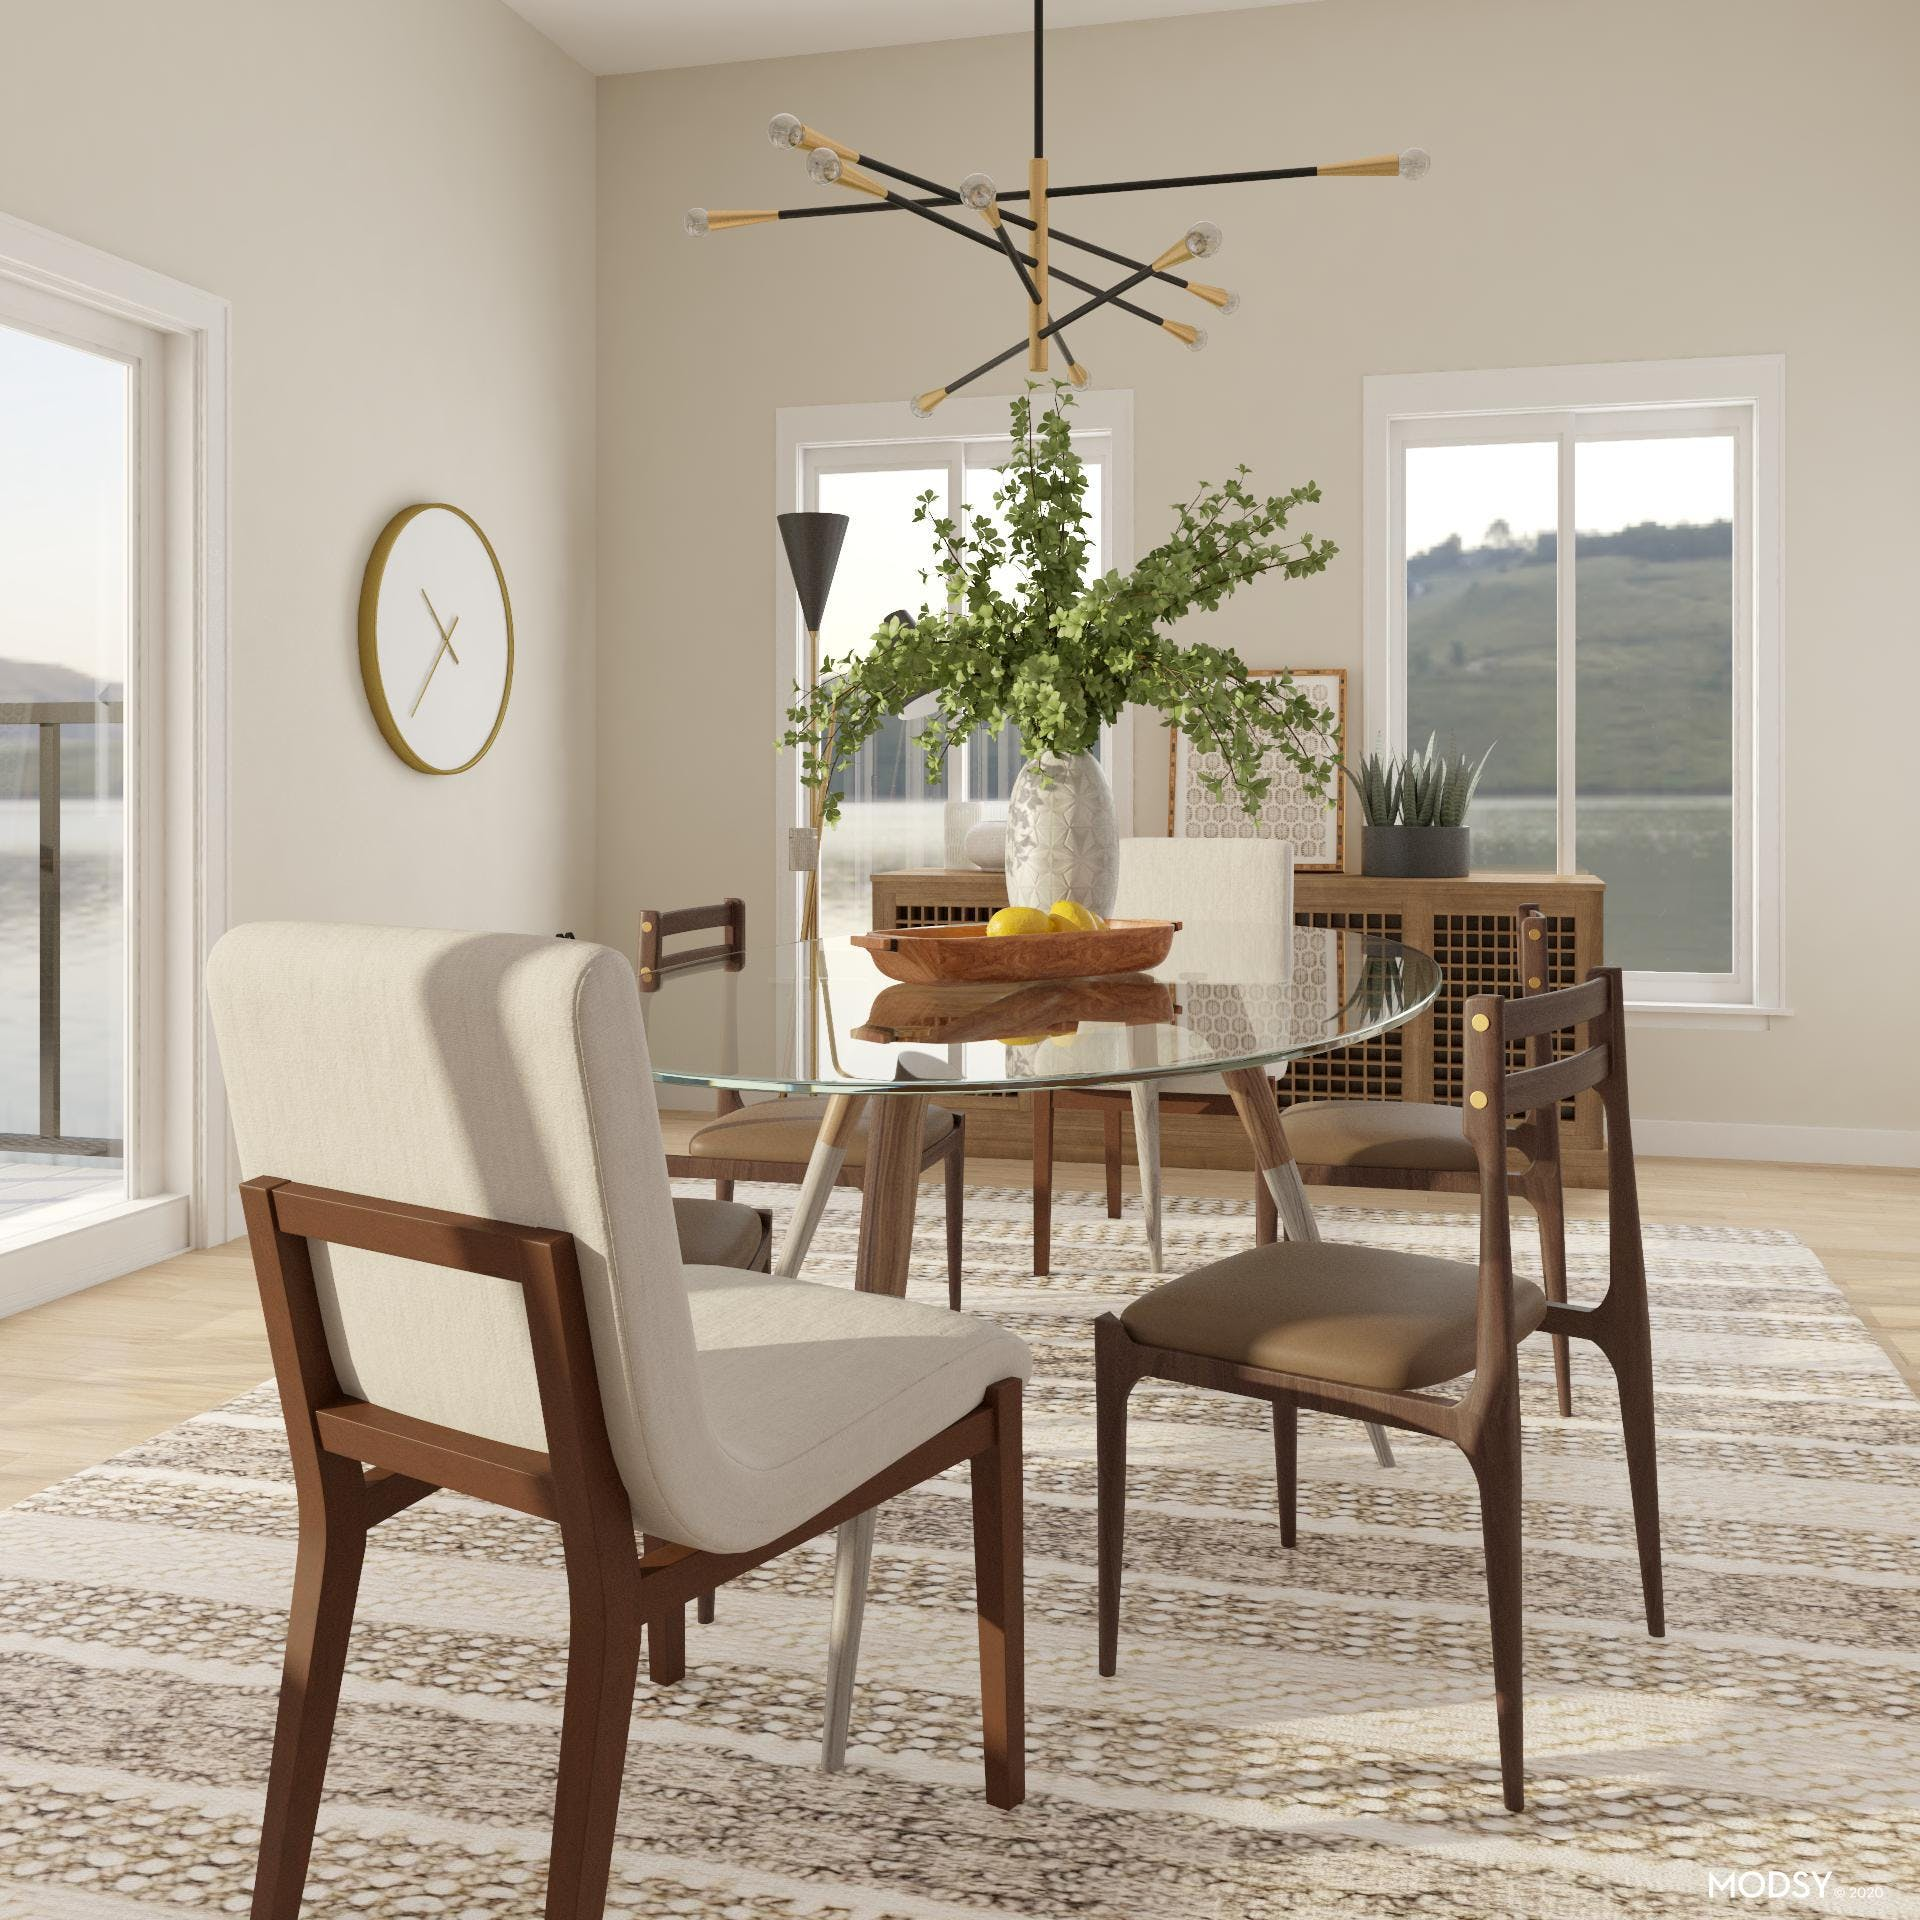 Oval Glass Table Top For A Modern Dining Room